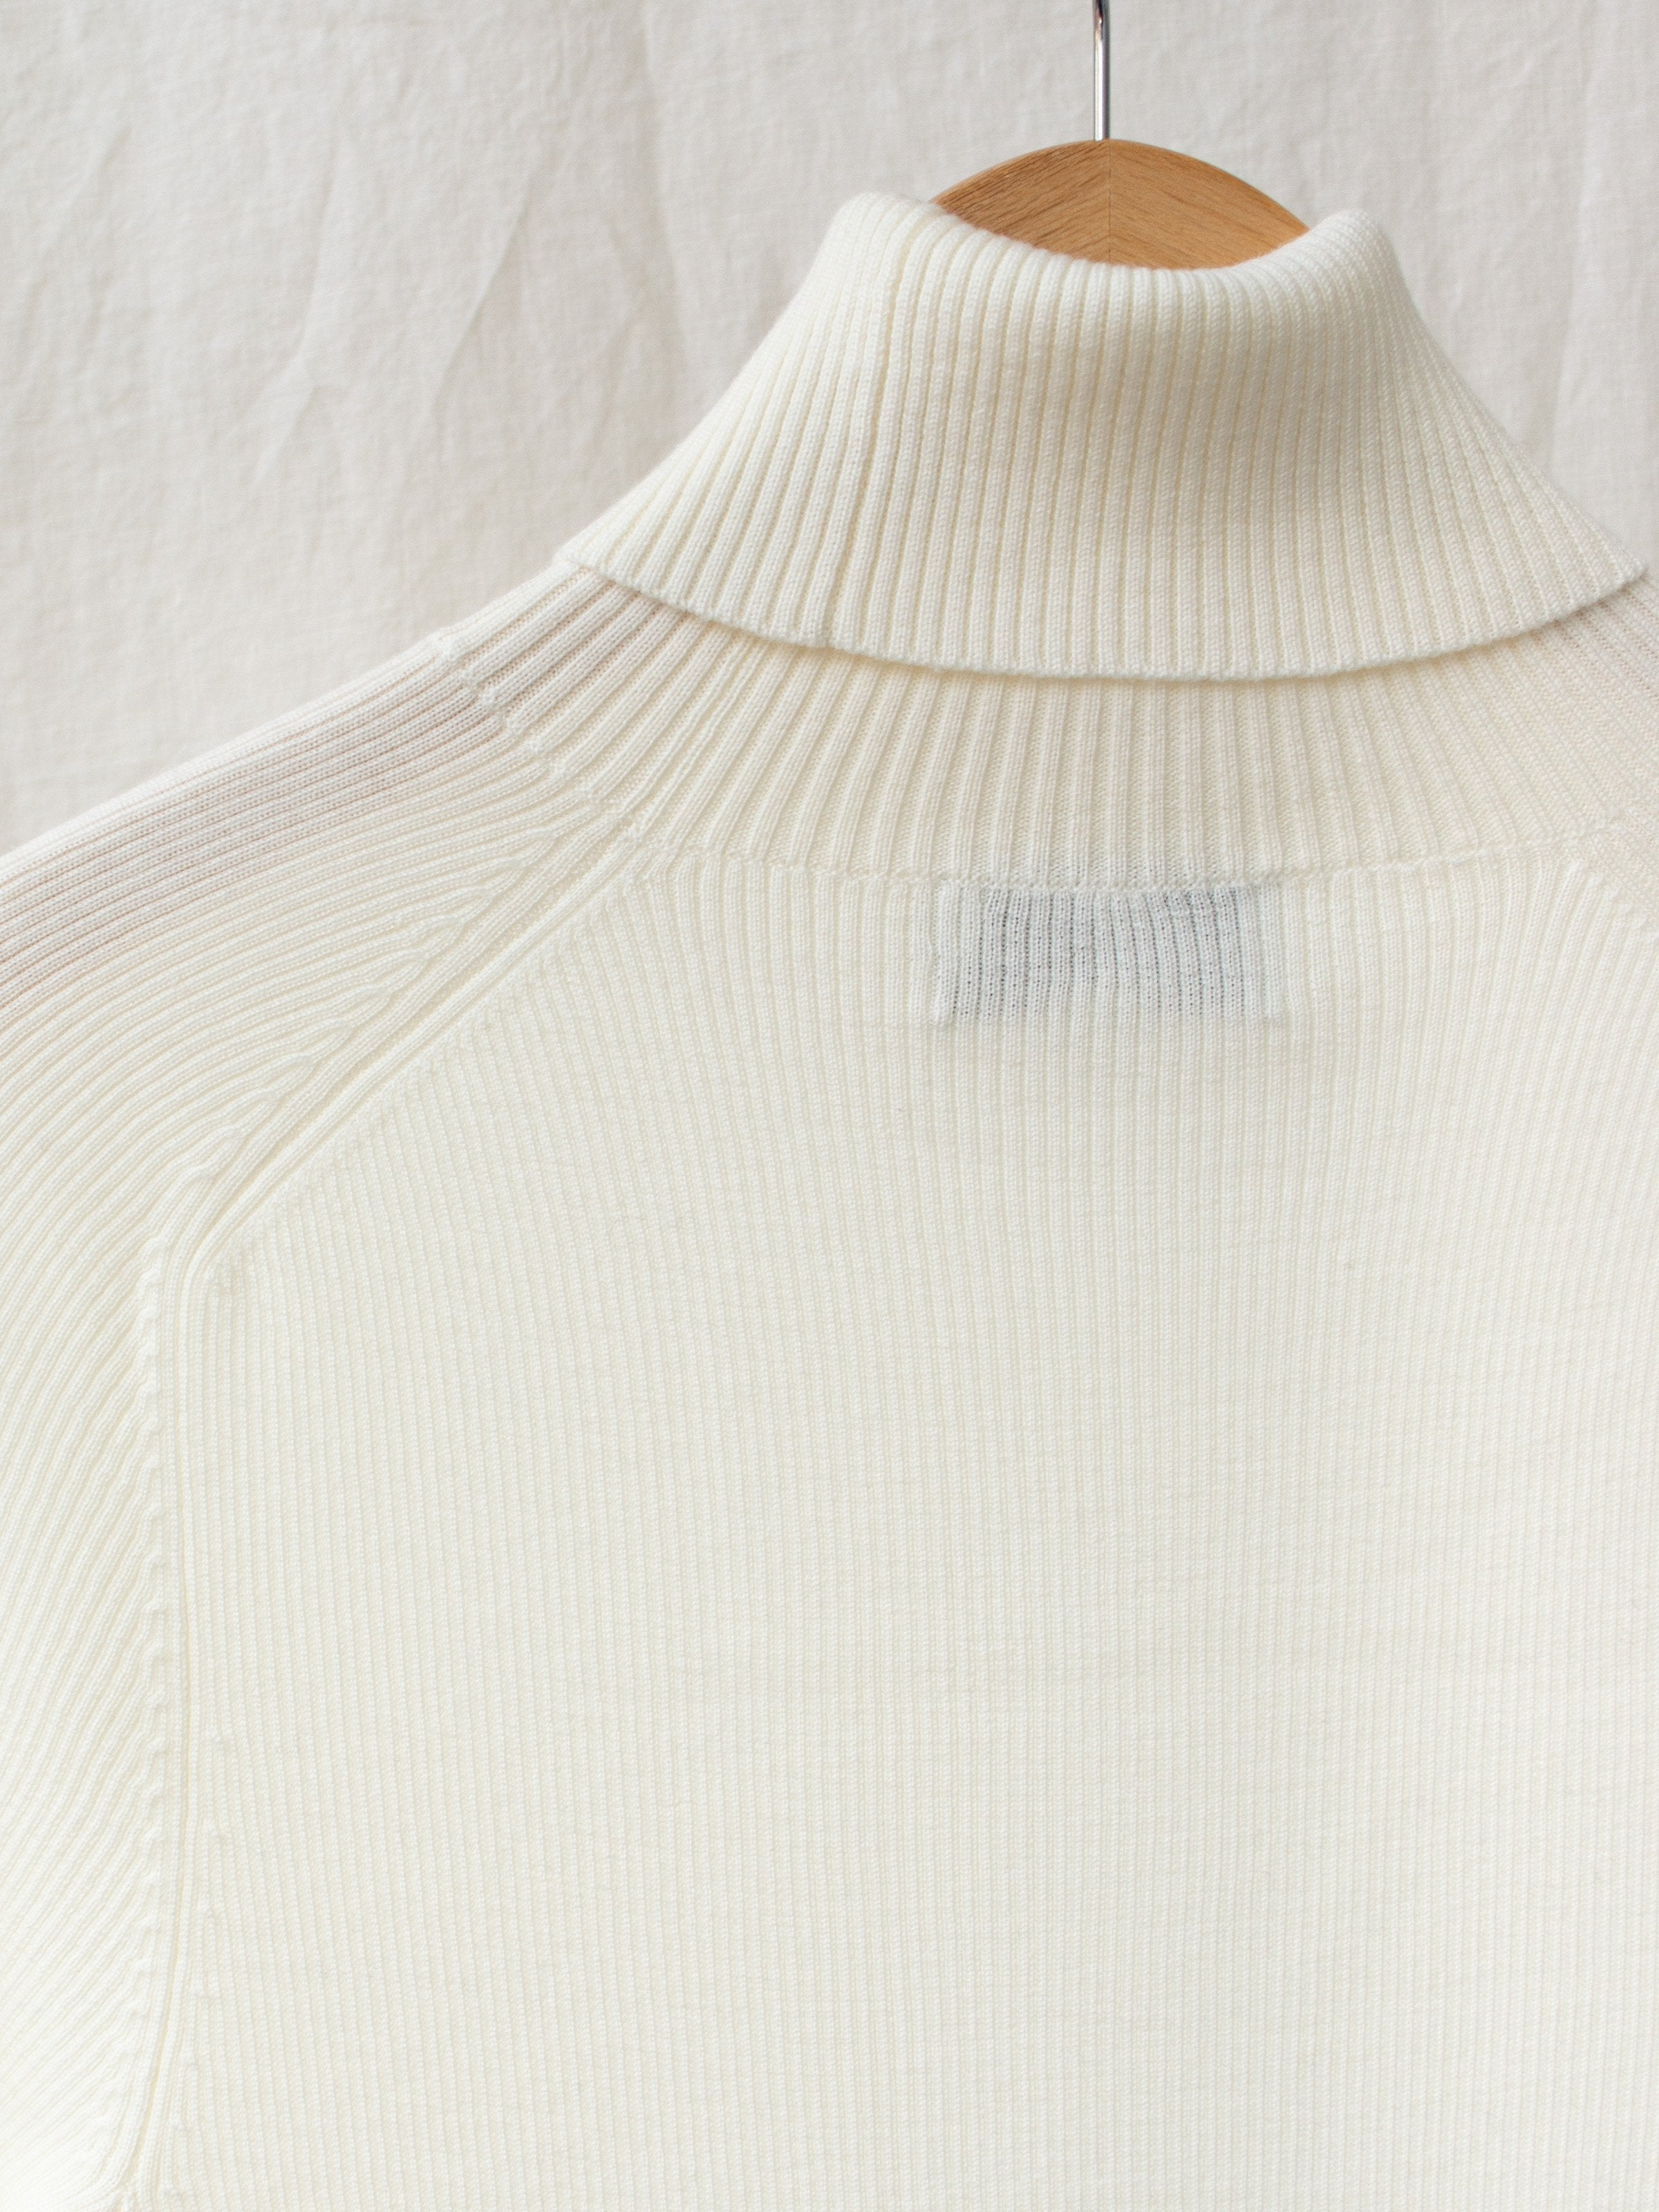 Namu Shop - Studio Nicholson Fine Merino Rib Turtleneck - Cream